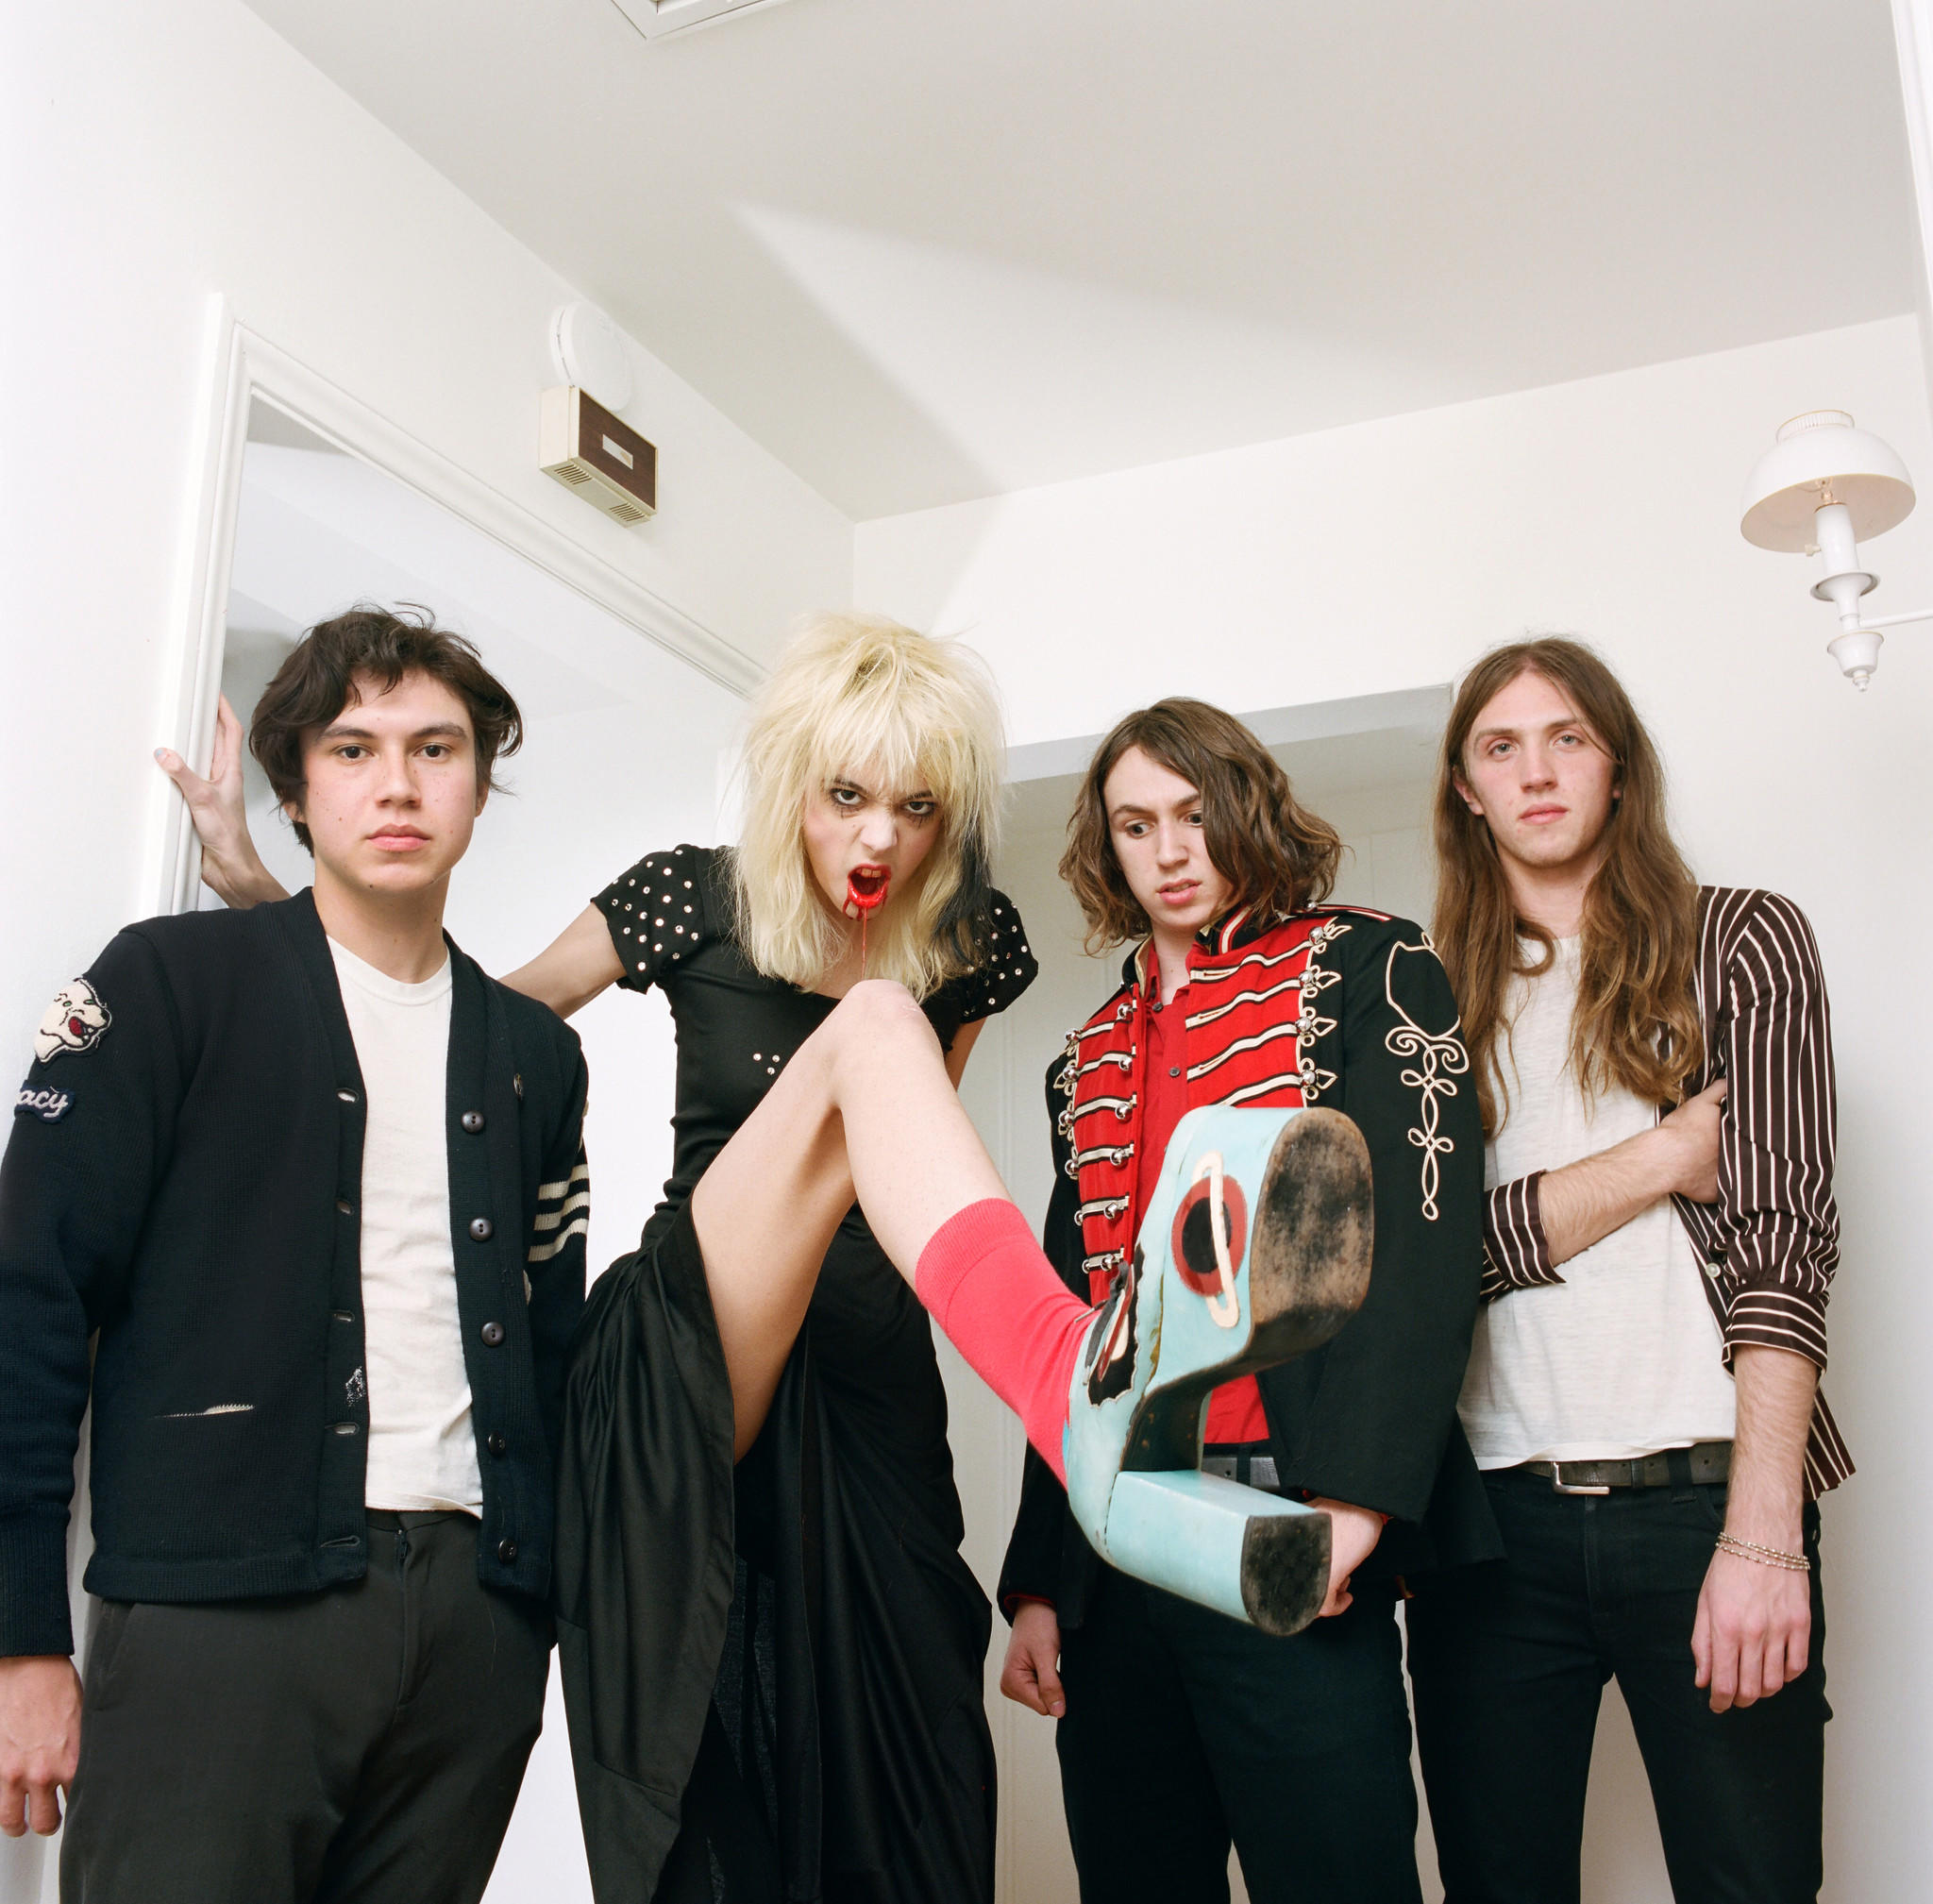 The band Starcrawler hails from Los Angeles. (Autumn De Wilde)